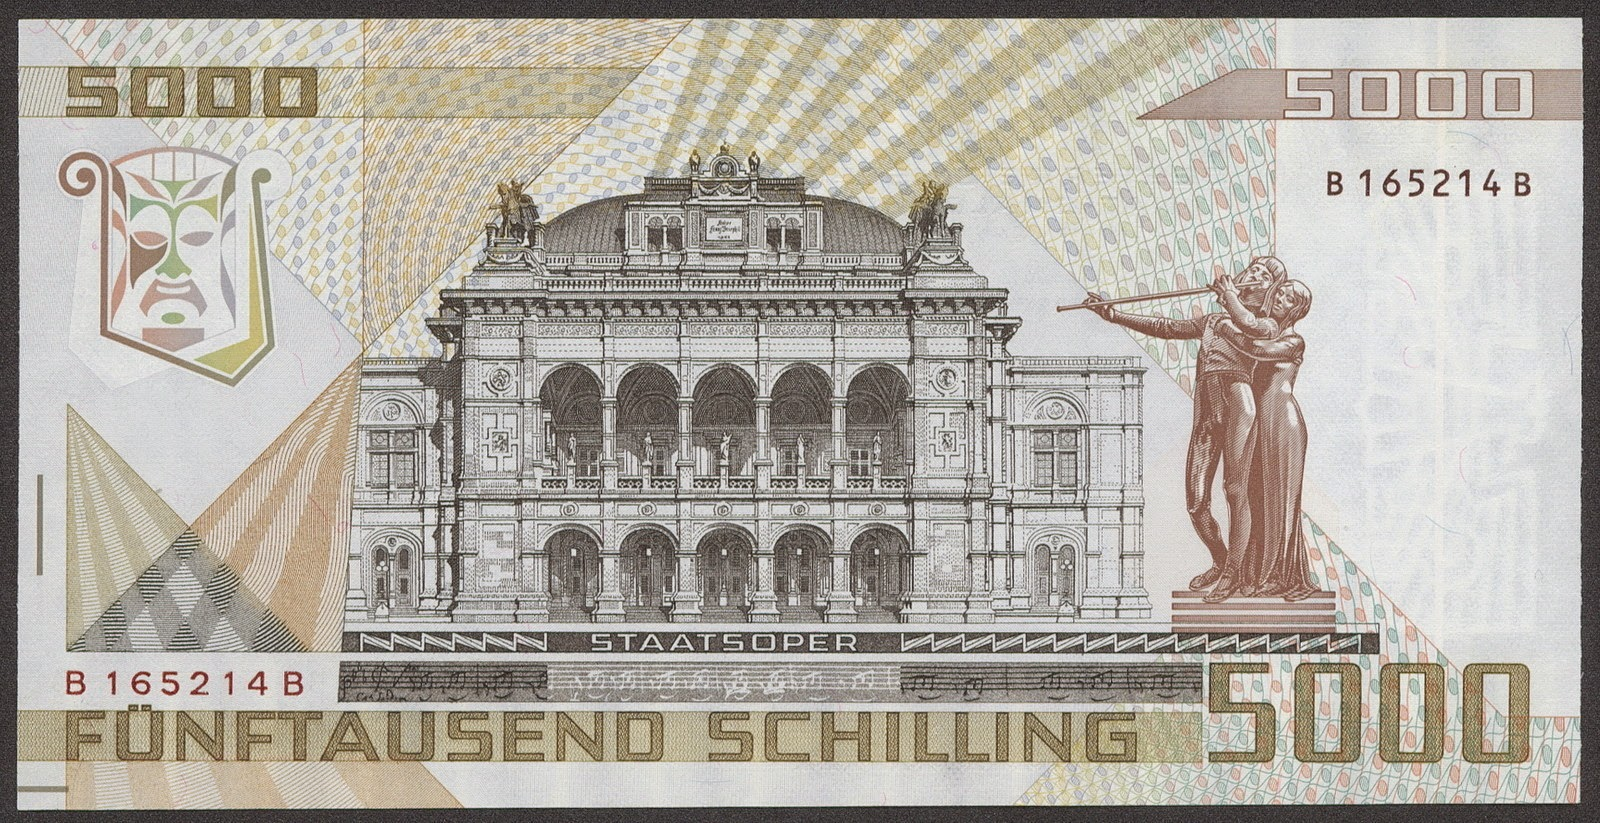 Austria money currency 5000 Austrian Schilling bank note image